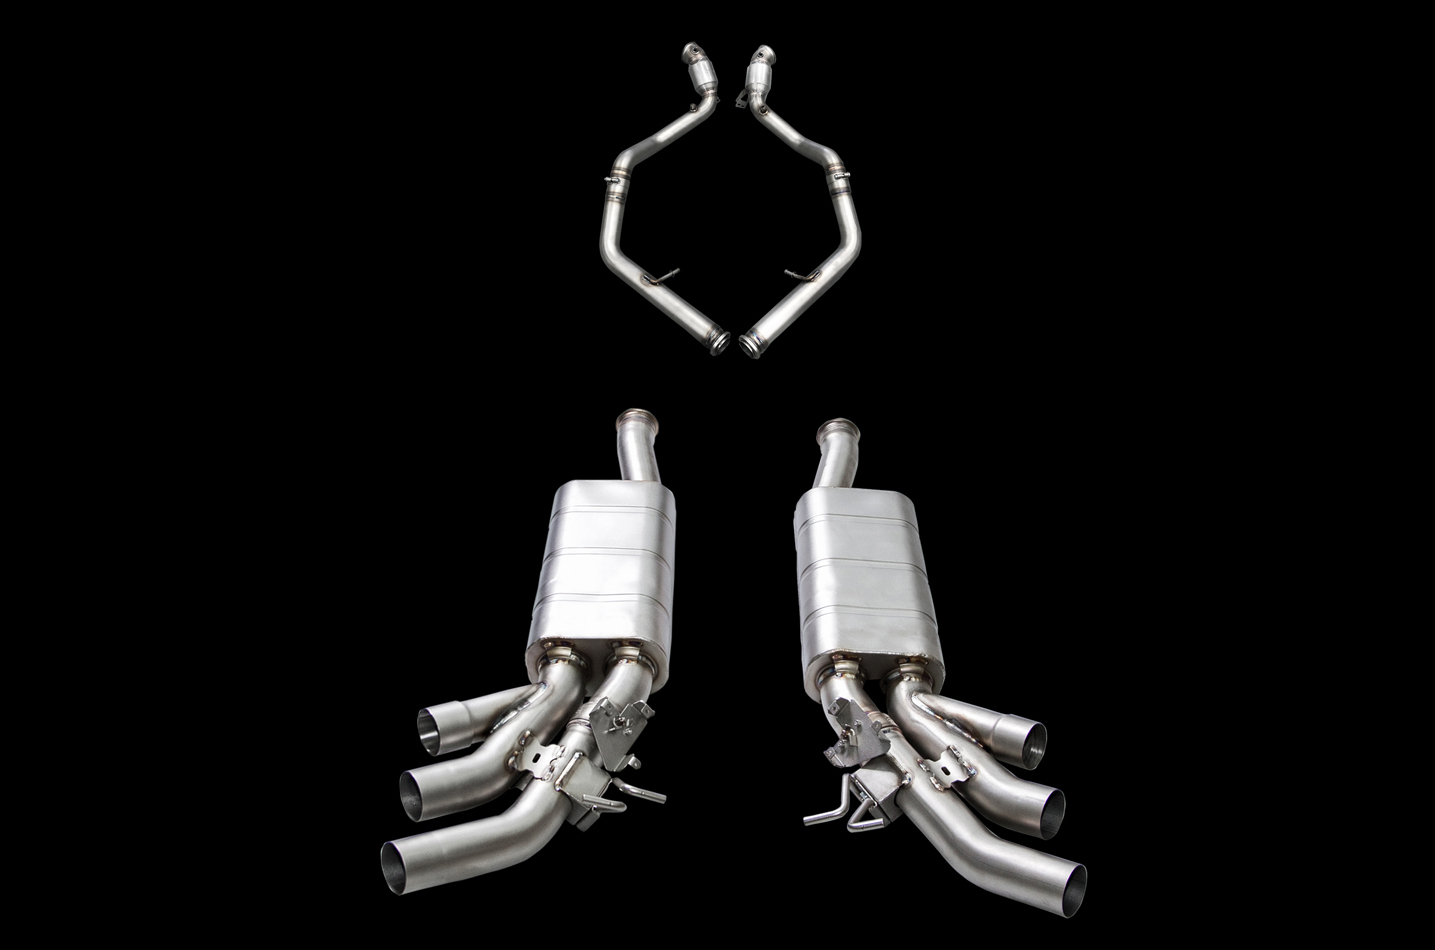 IPE exhaust system for Mercedes-Benz G63 / G500 (W464)